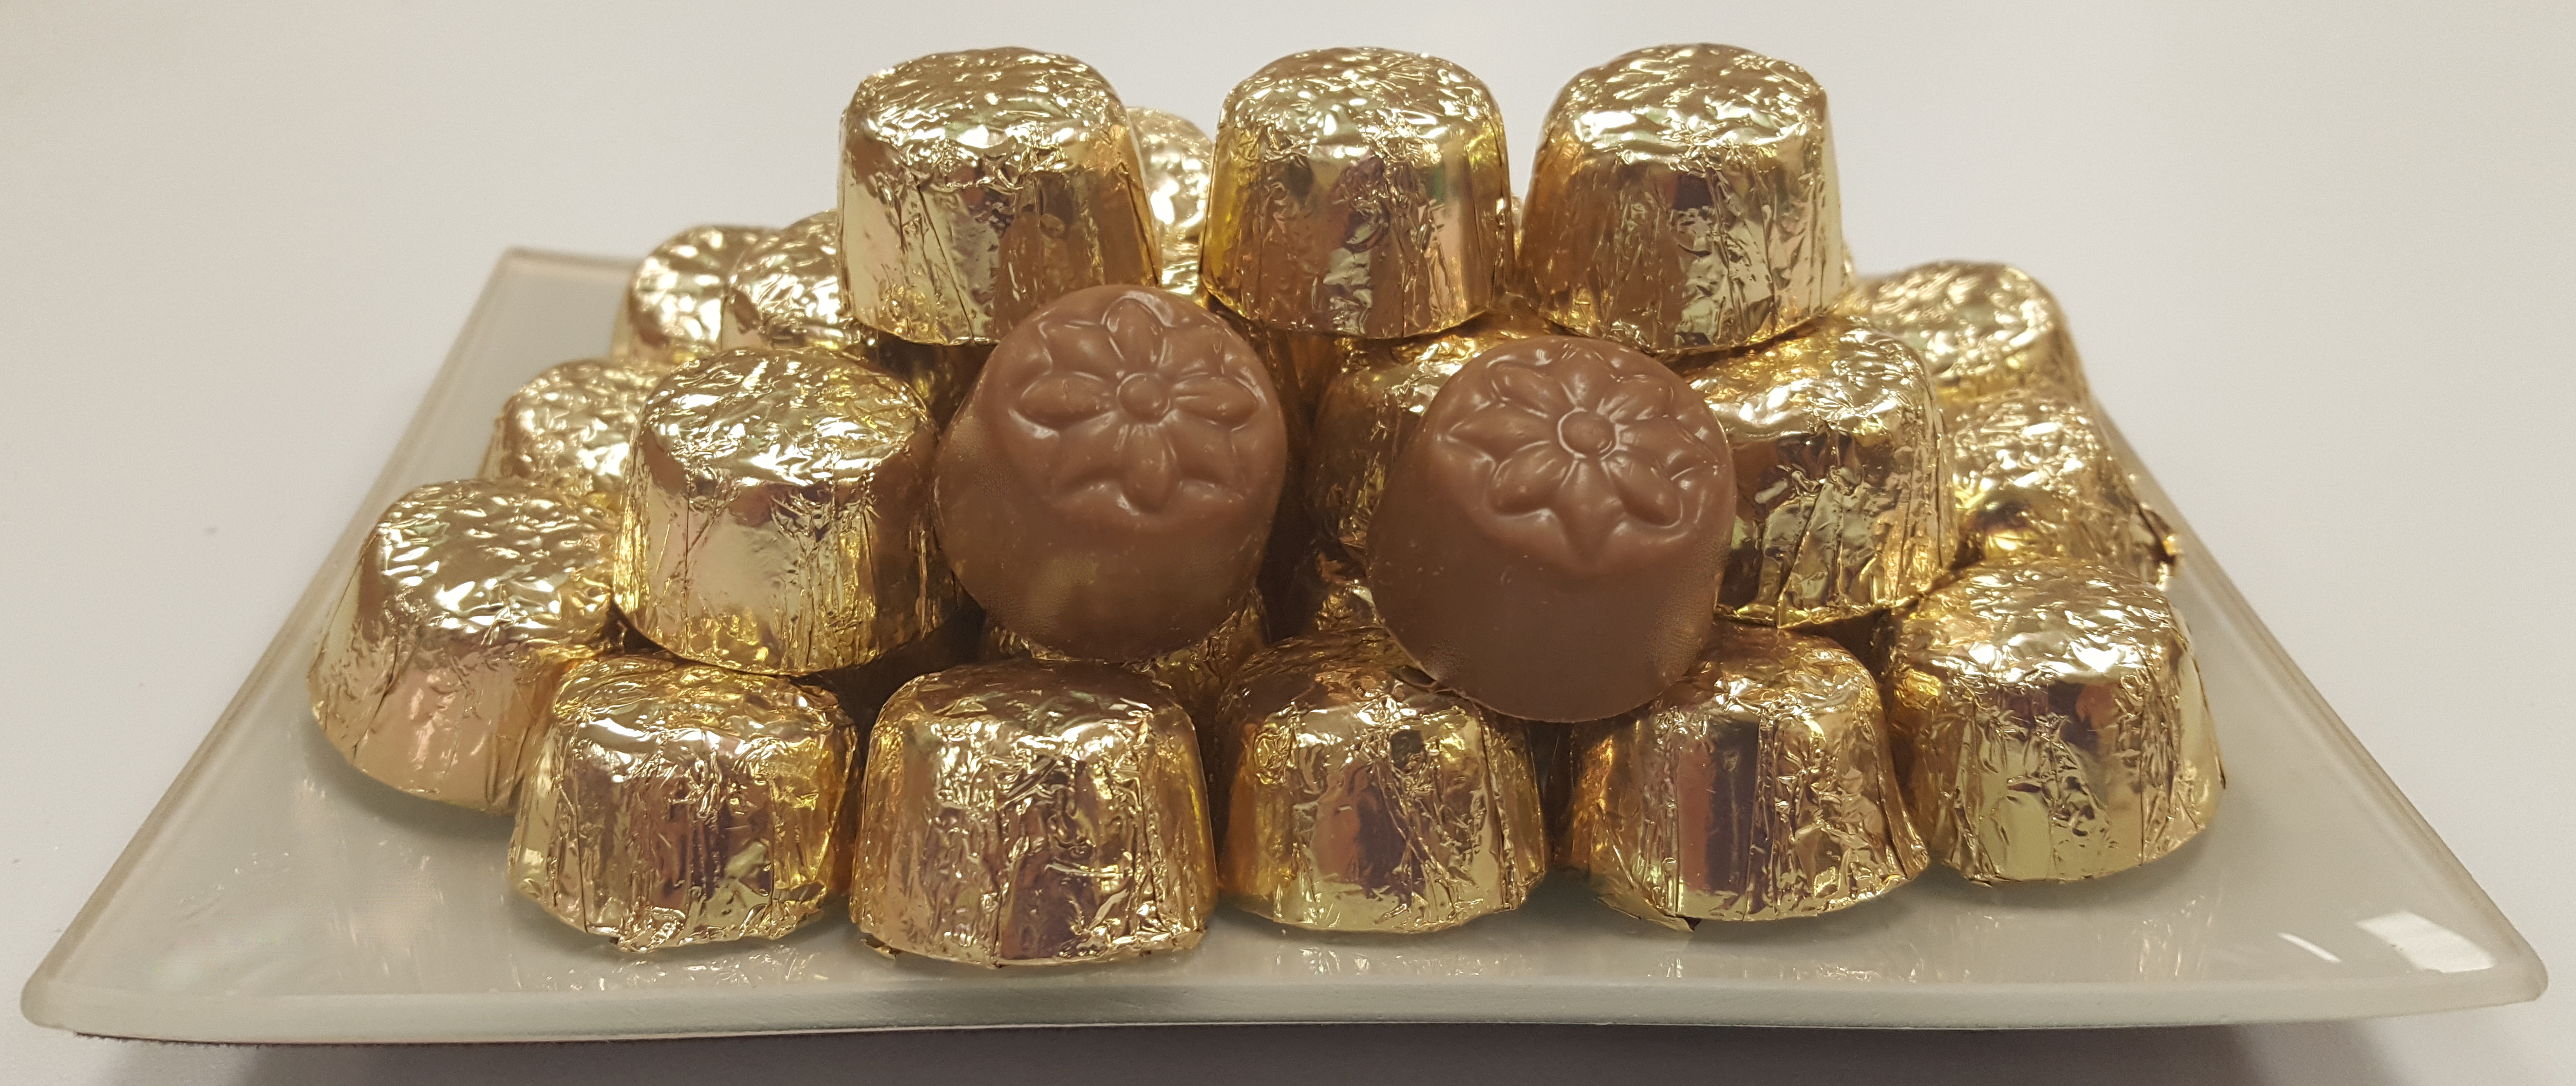 16 oz. Gold Foil Wrapped Milk Chocolate Domes